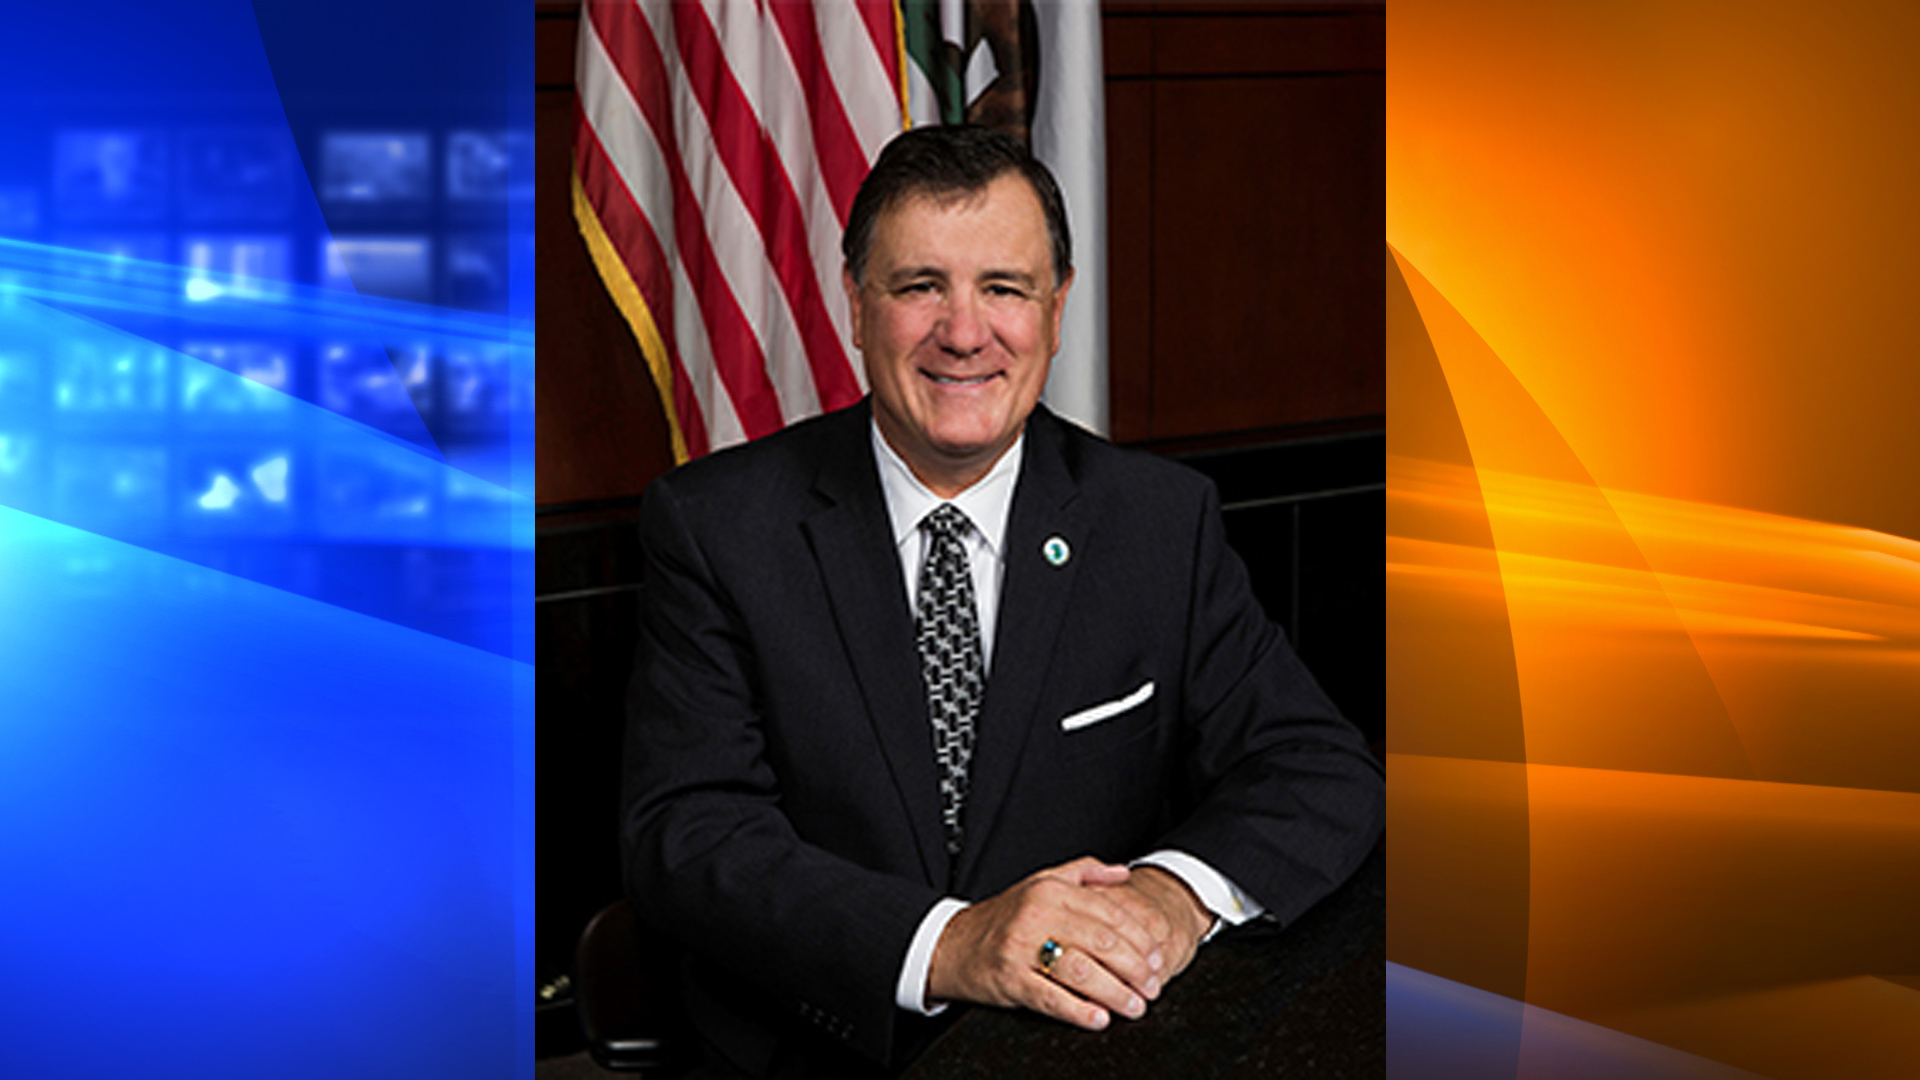 Irvine Mayor Don Wagner, pictured in an undated photo provided by the city of Irvine.